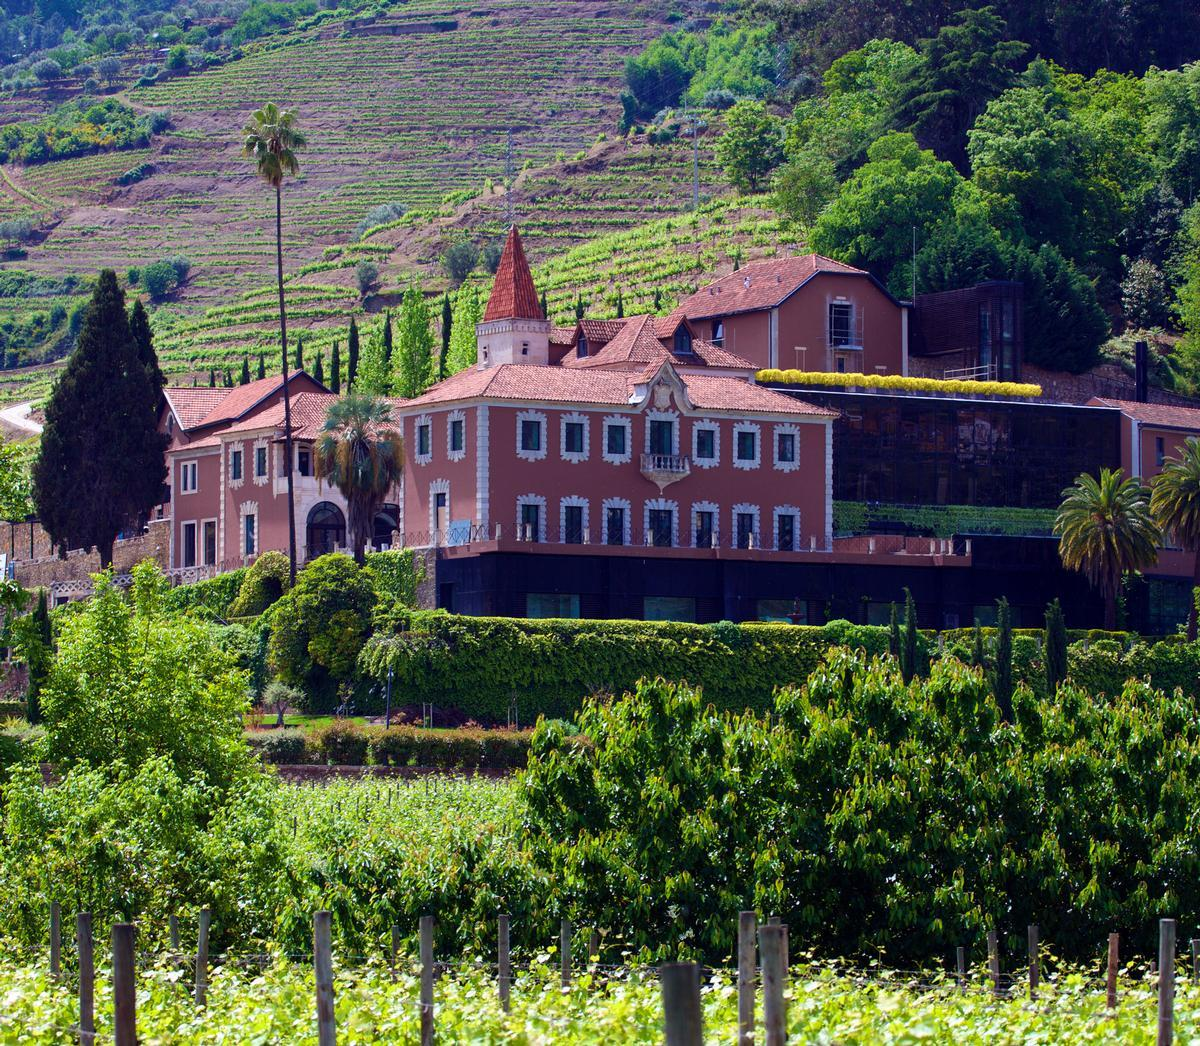 The resort is located in a 22-acre, 19th century vineyard set within a UNESCO World Heritage Site